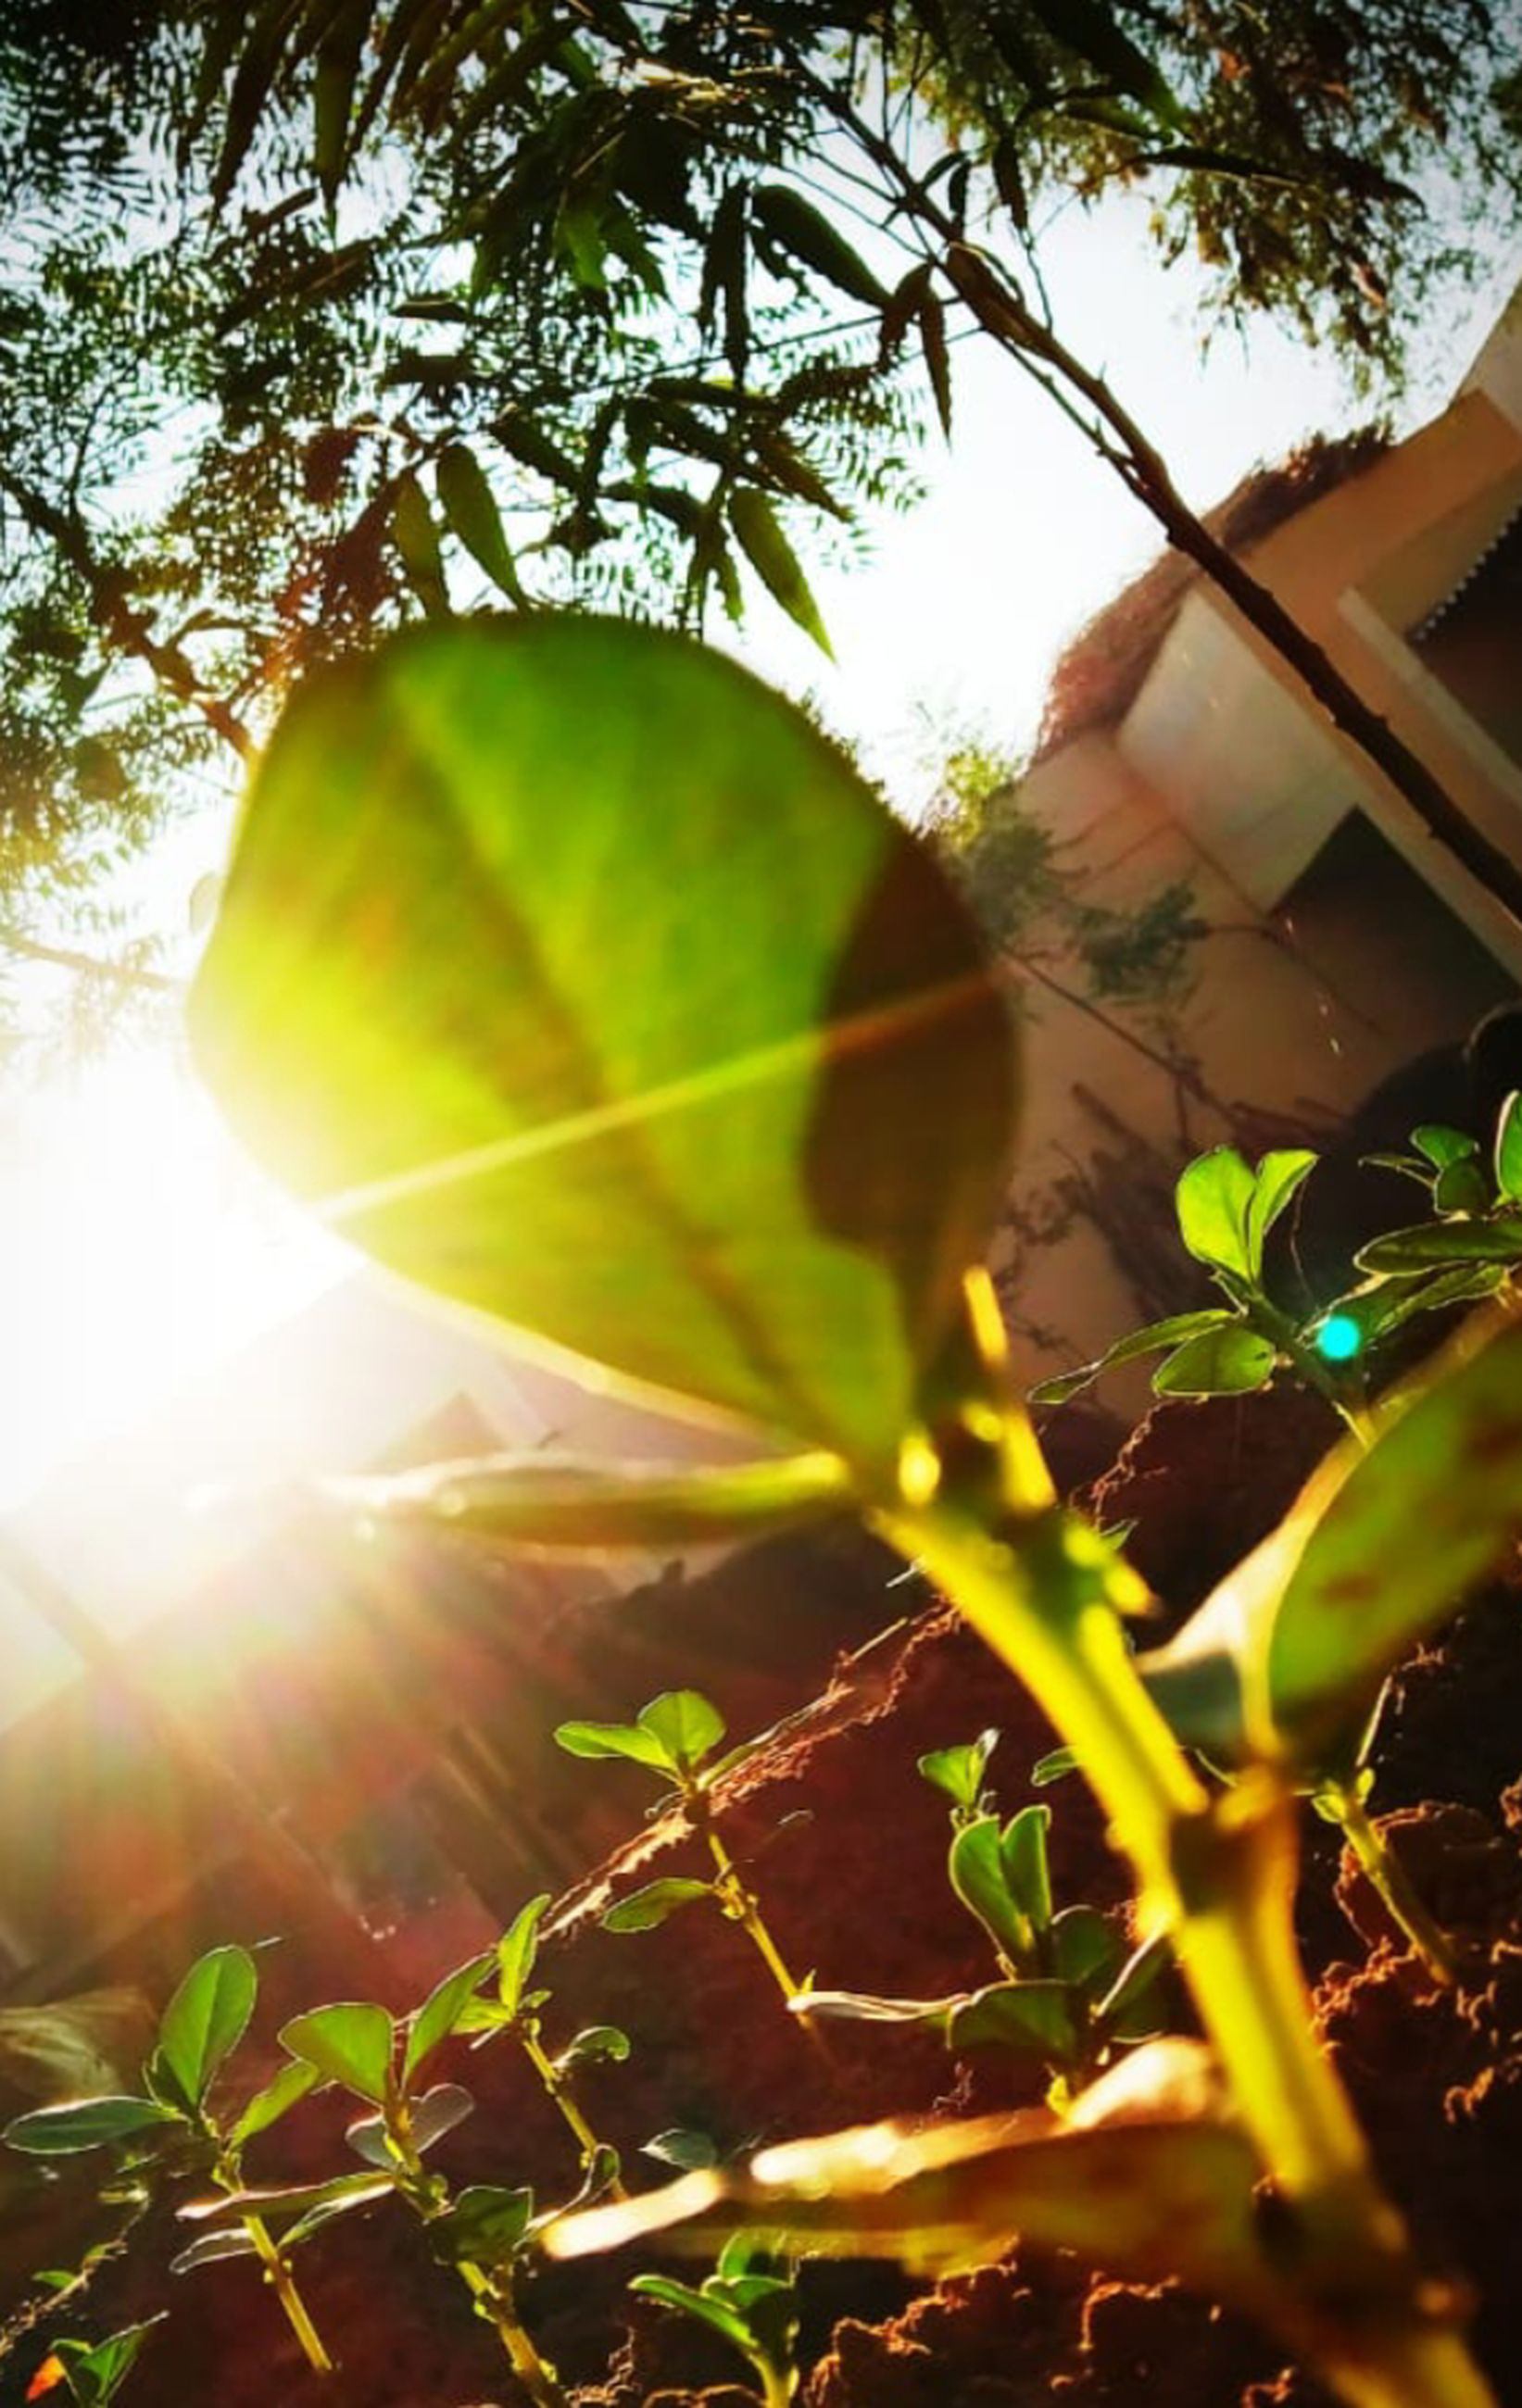 sunlight, plant, nature, leaf, green, light, yellow, tree, growth, lens flare, plant part, branch, flower, autumn, sunbeam, sky, sun, no people, back lit, outdoors, beauty in nature, day, low angle view, land, agriculture, food